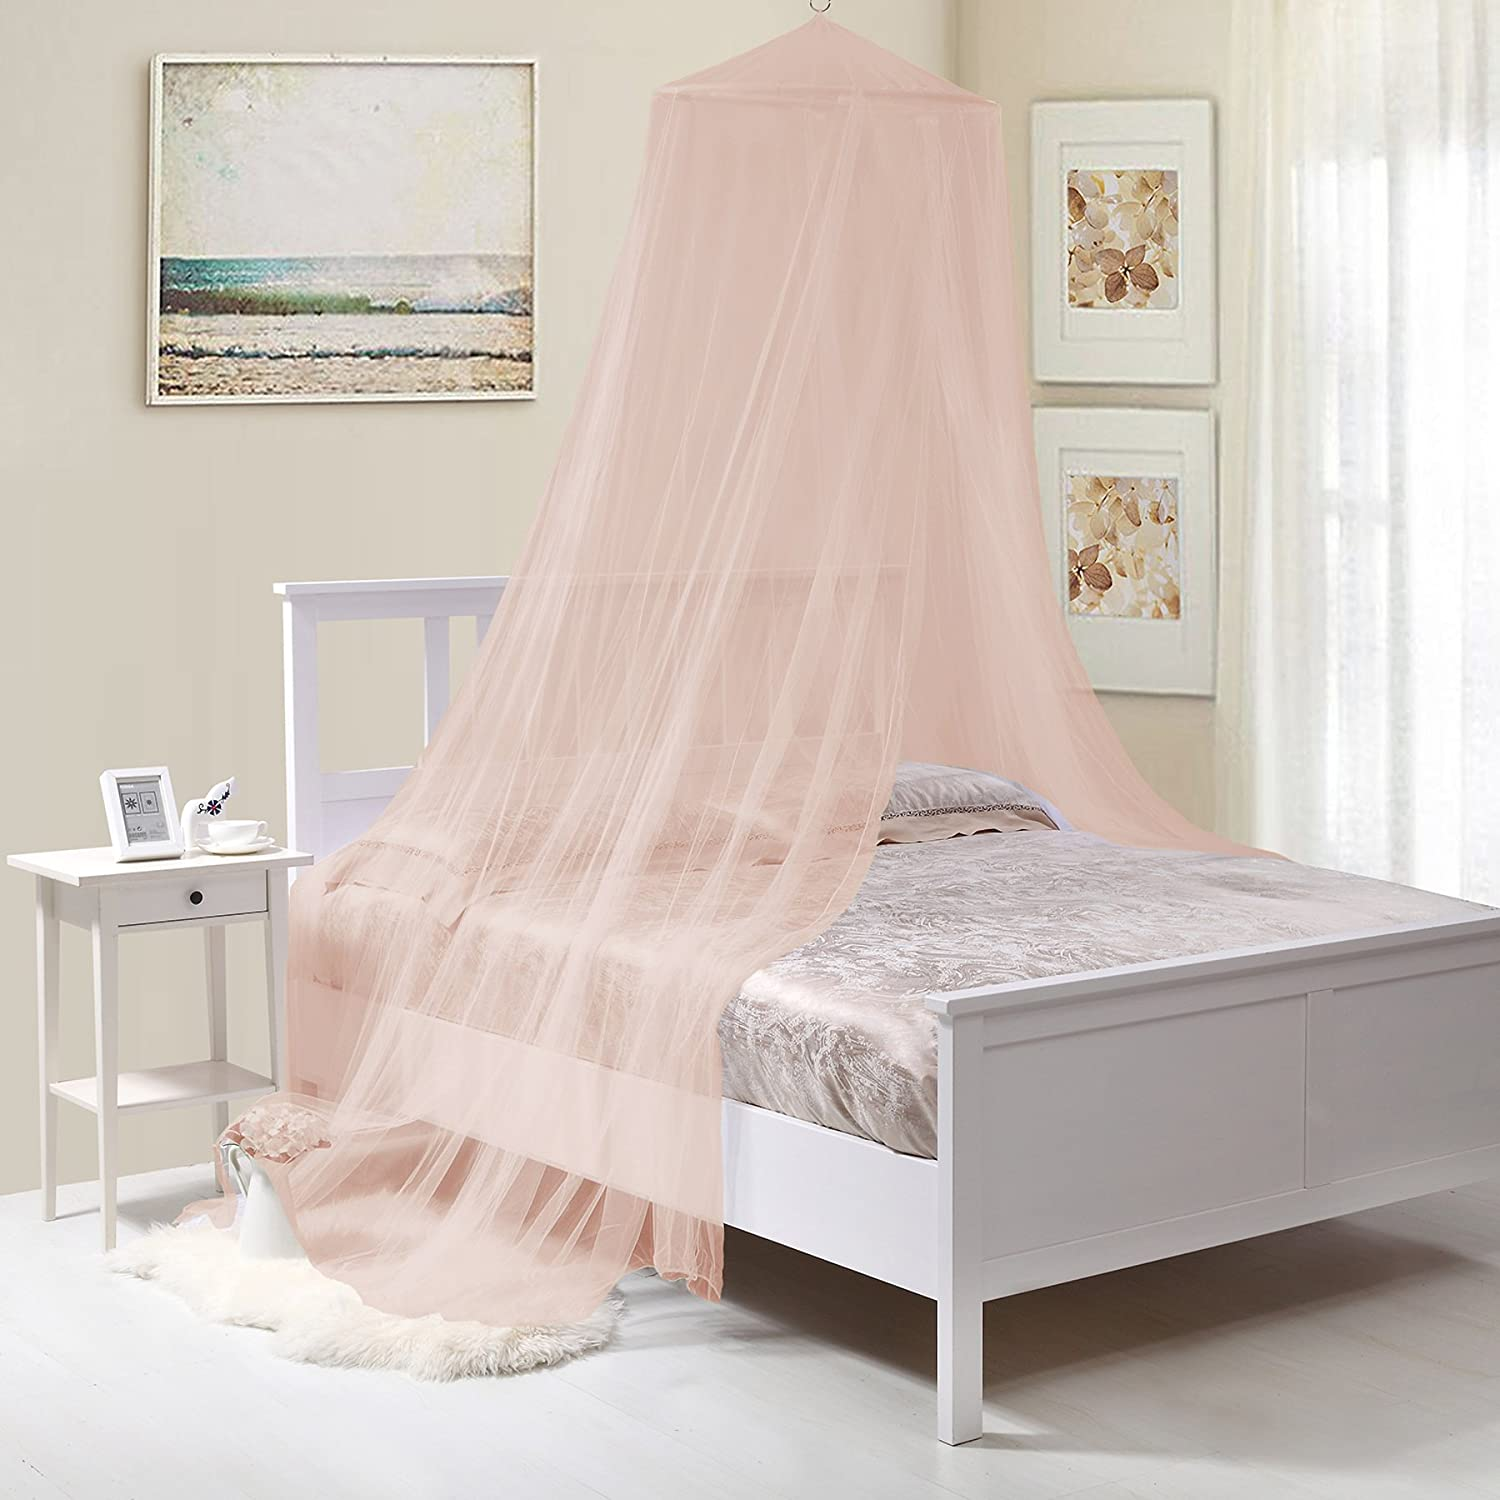 Fantasy Kids Collapsible Wire Hoop Bed Canopy, Hot Pink, One Size Epoch Hometex Inc. 2070455